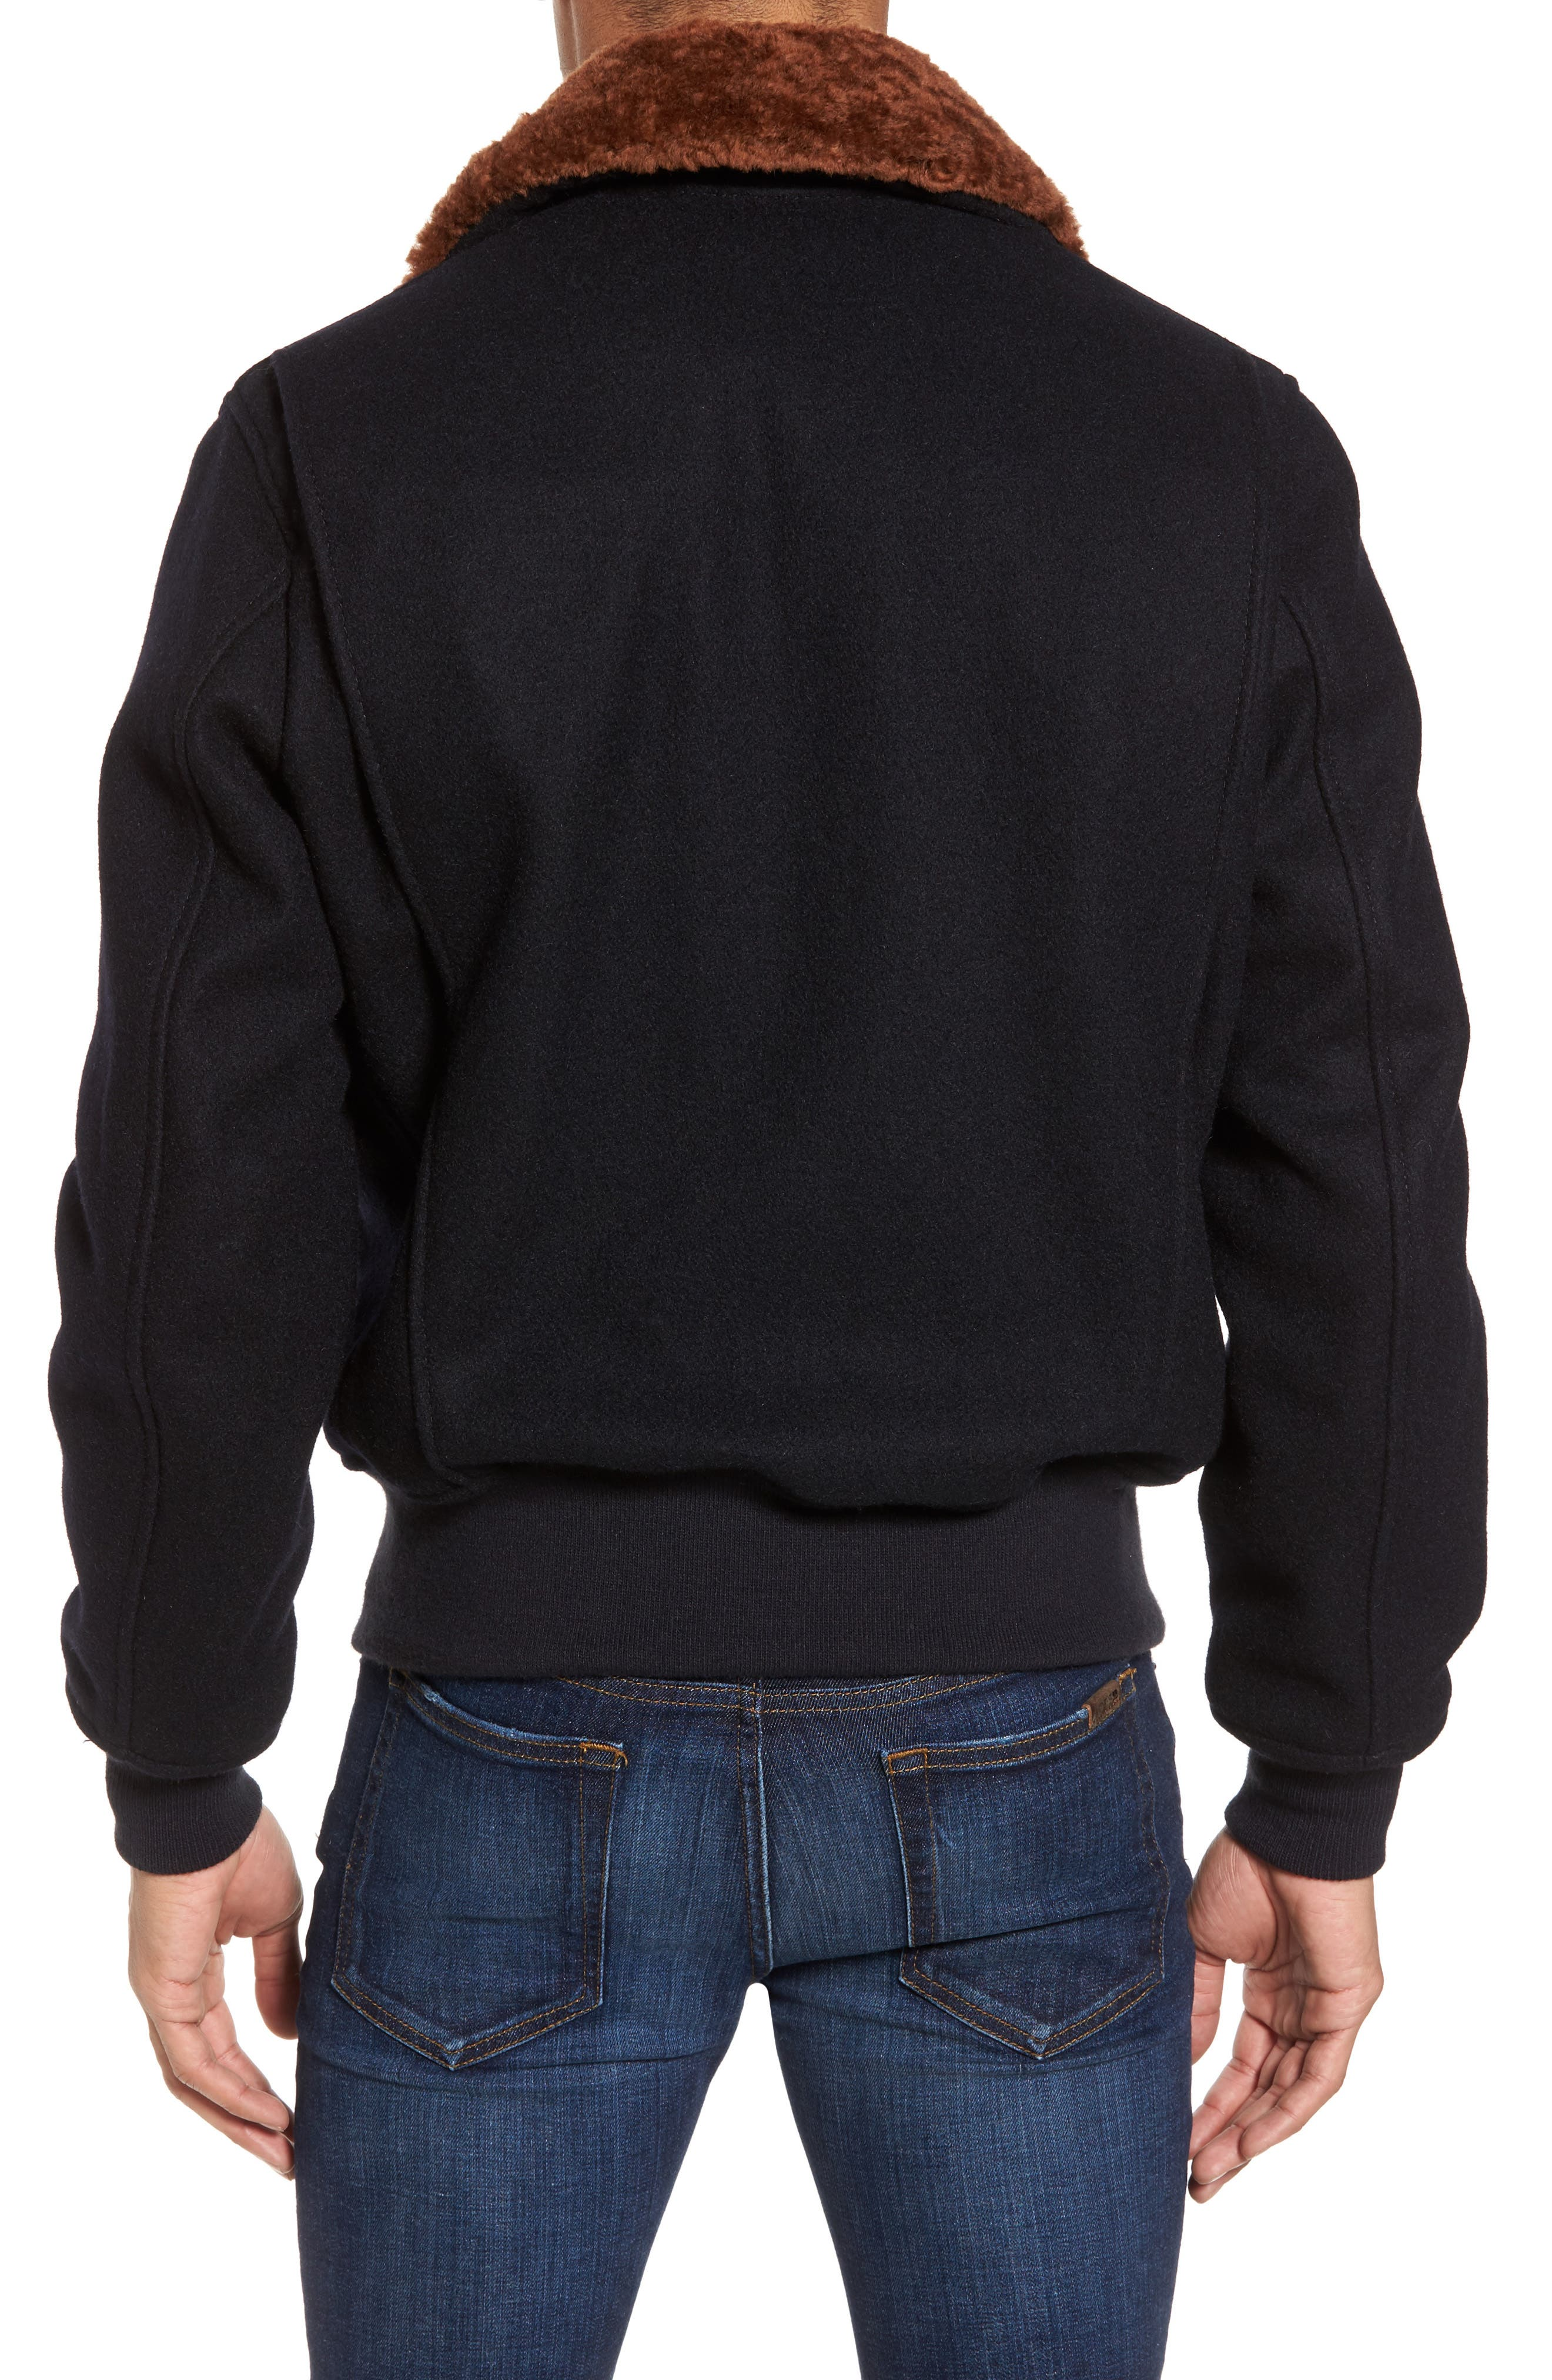 SchottNYC'G-1' Zip Front Bomber with Genuine Shearling Collar,                             Alternate thumbnail 2, color,                             Ny1